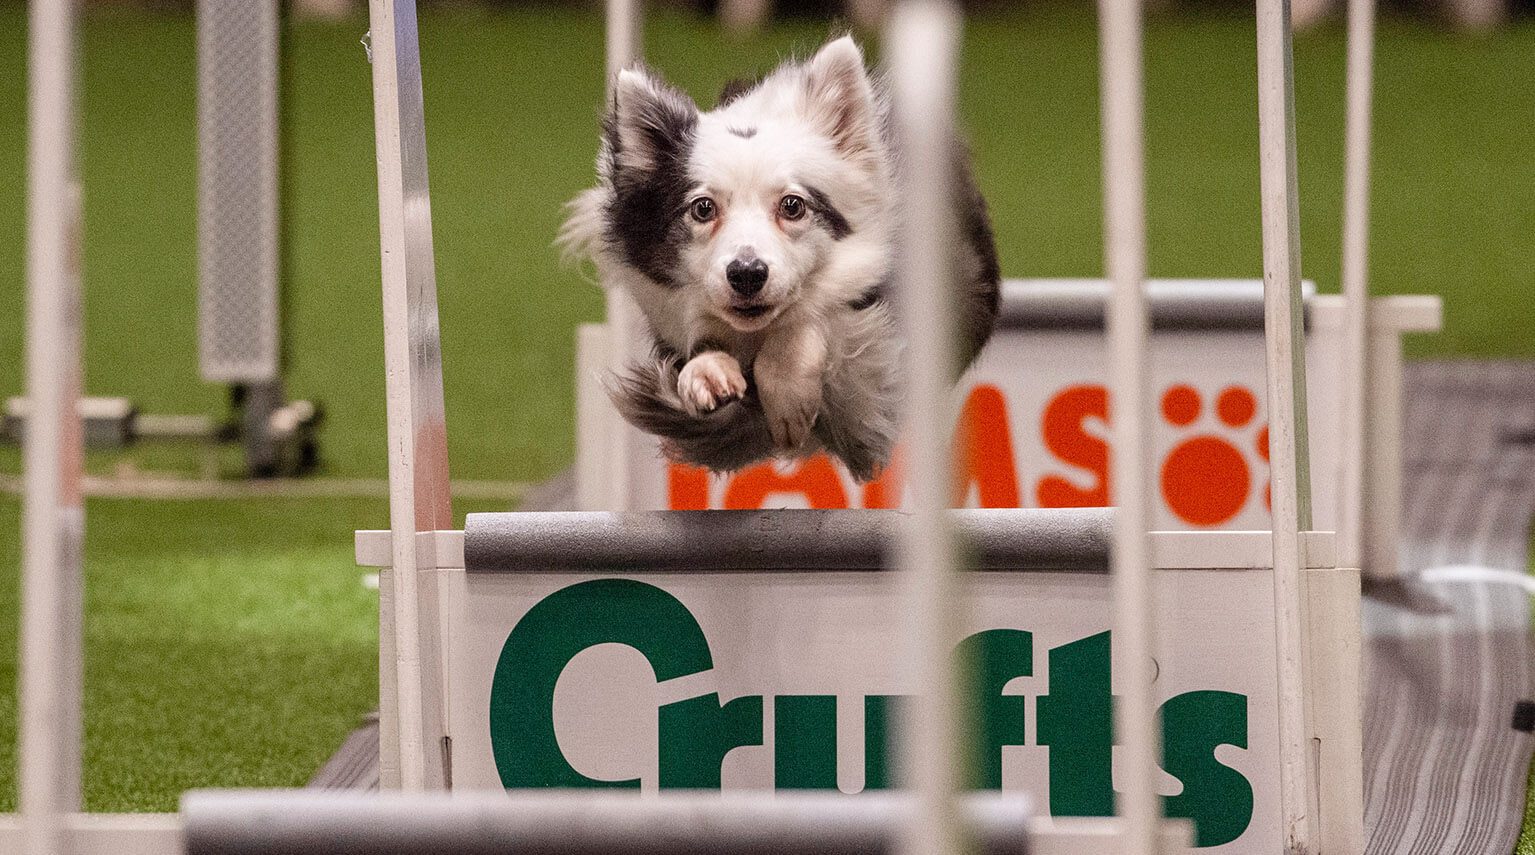 crufts-arenas-image2.jpg